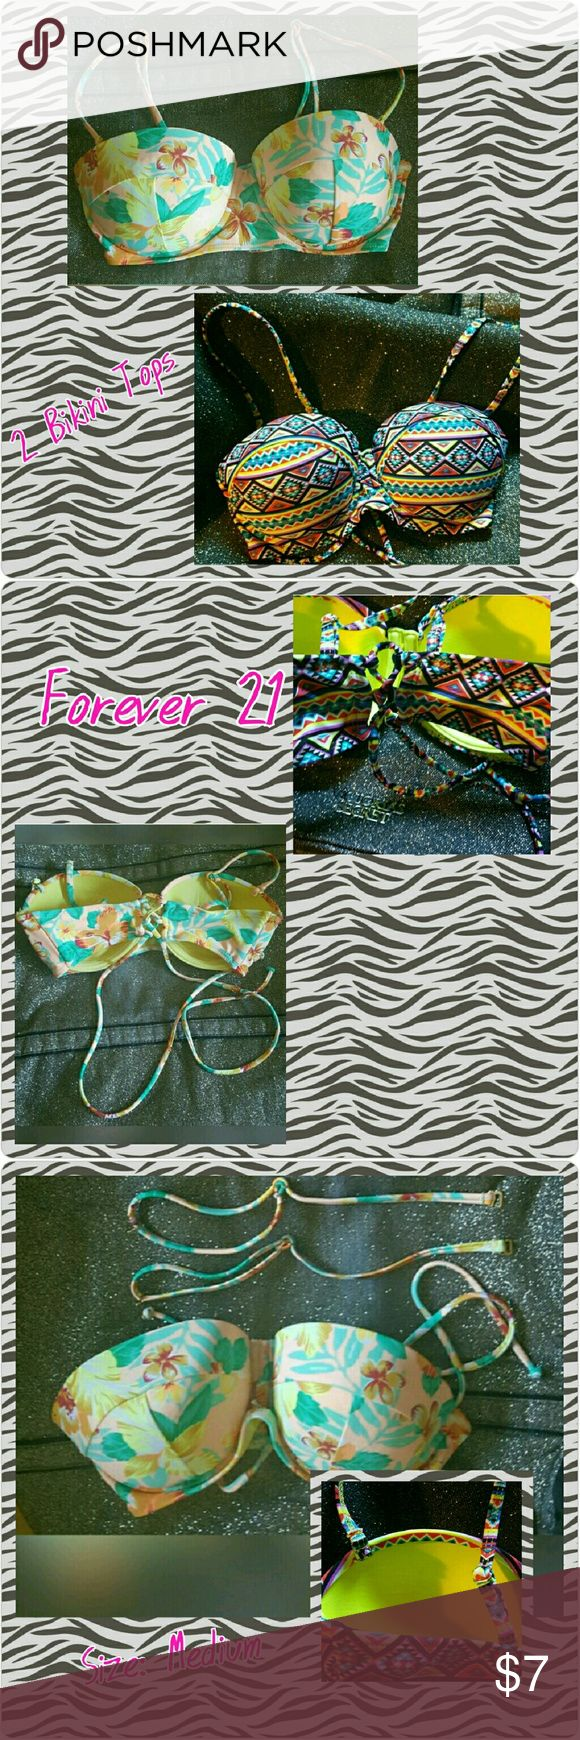 🎊2 Forever 21 Bikini Tops Size Medium (see last pic for sizing guide) Light padding Feels like a bustier Detachable straps to make it strapless or halter  Criss cross back tie for a secure hold Tag was silicone/plastic F21 tag & taken off Cotton candy Hawaiian design🌺 && Aztec neon design 🌶 In beautiful condition🎀  They werw meant to be back up bikini tops this summer that didn't end up being worn.   Ships next day🎁🚀 Take advantage of my bundle discount👌 Forever 21 Swim Bikinis